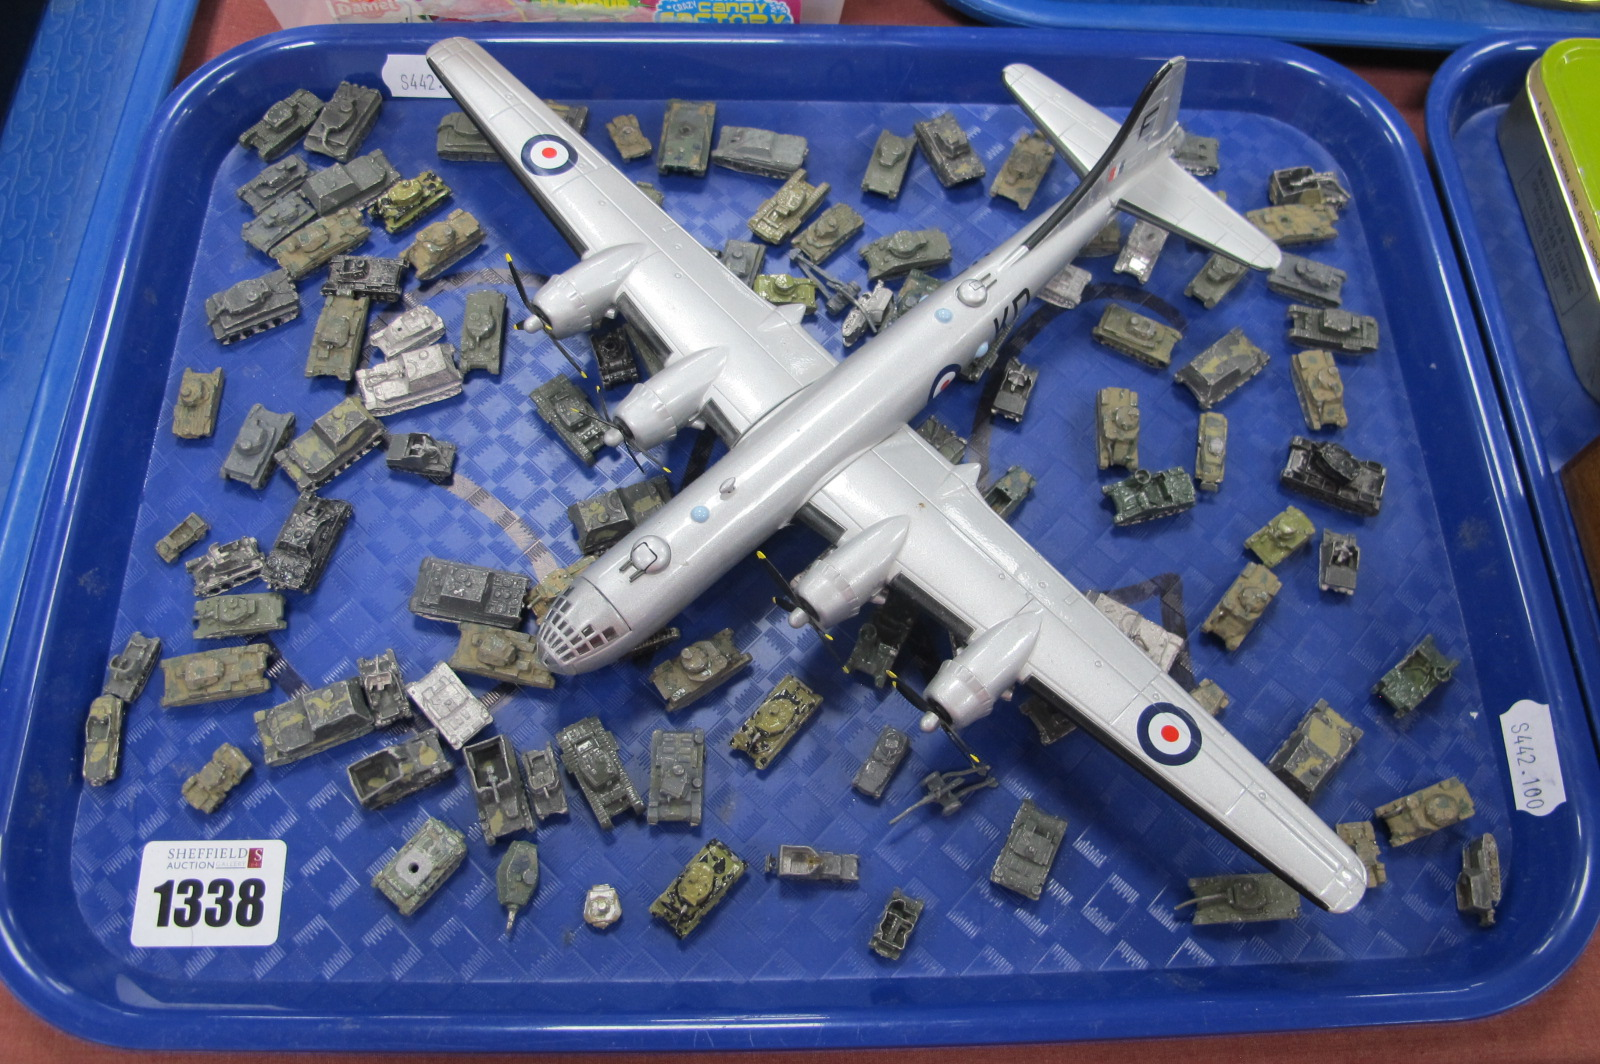 A Collection of War Gaming Miniature Tanks, (playworn); a Corgi model Boeing B29 :- One Tray